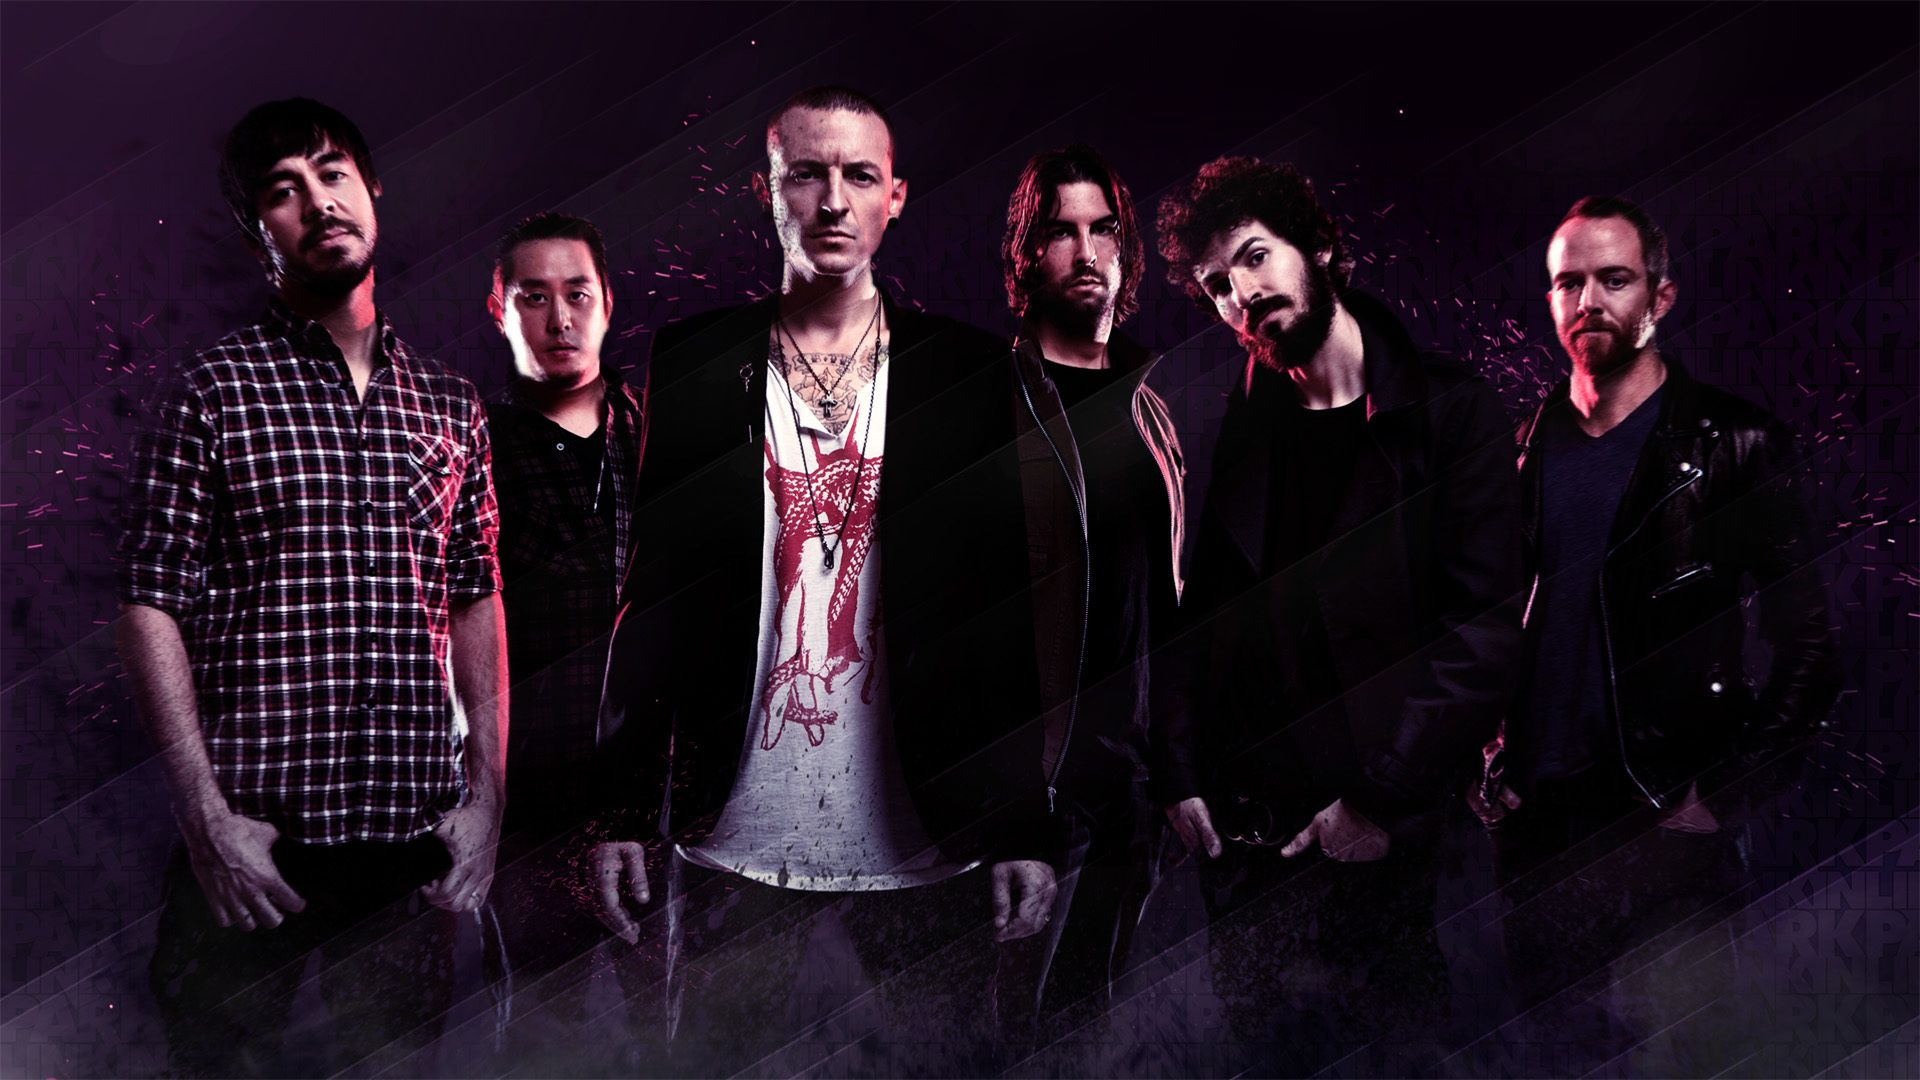 Linkin Park Hd Wallpapers Backgrounds Wallpaper 1360 768 Linkin